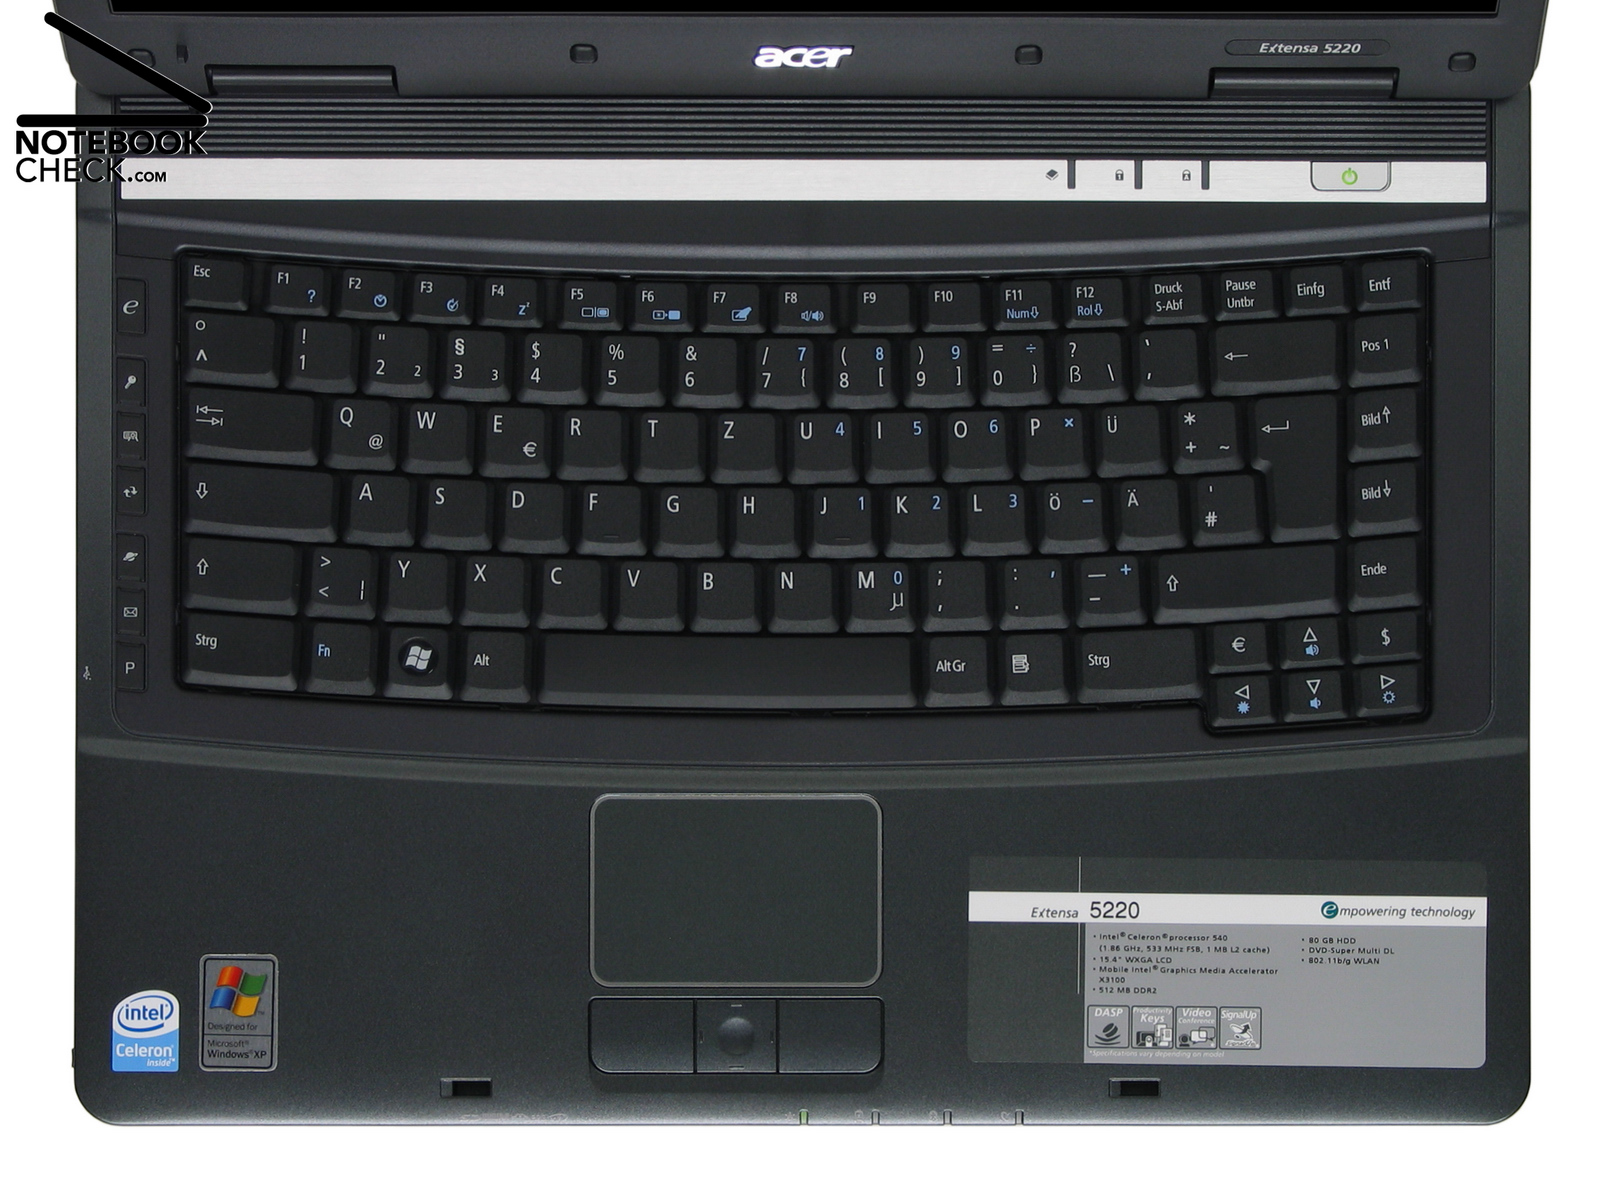 ACER EXTENSA 5220 SATA DRIVERS FOR WINDOWS 7